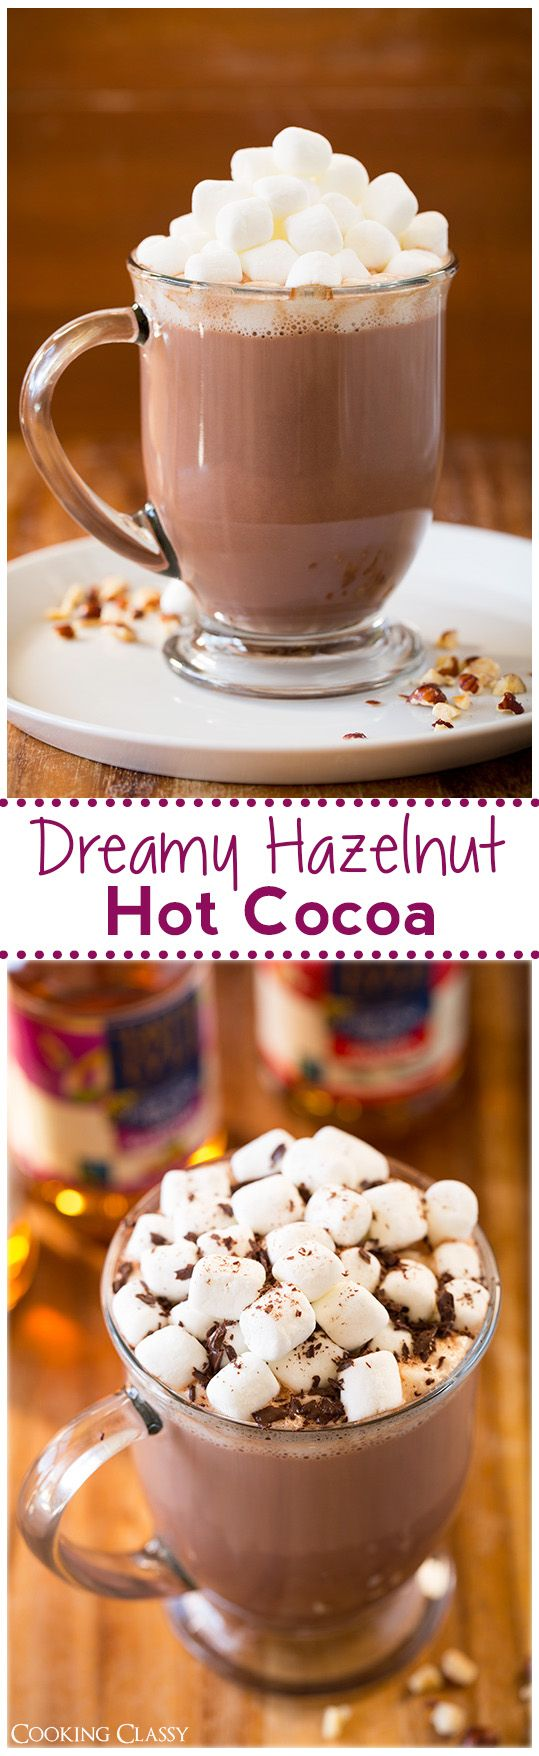 ... Hazelnut Hot Cocoa - this is one of my favorite hot chocolate